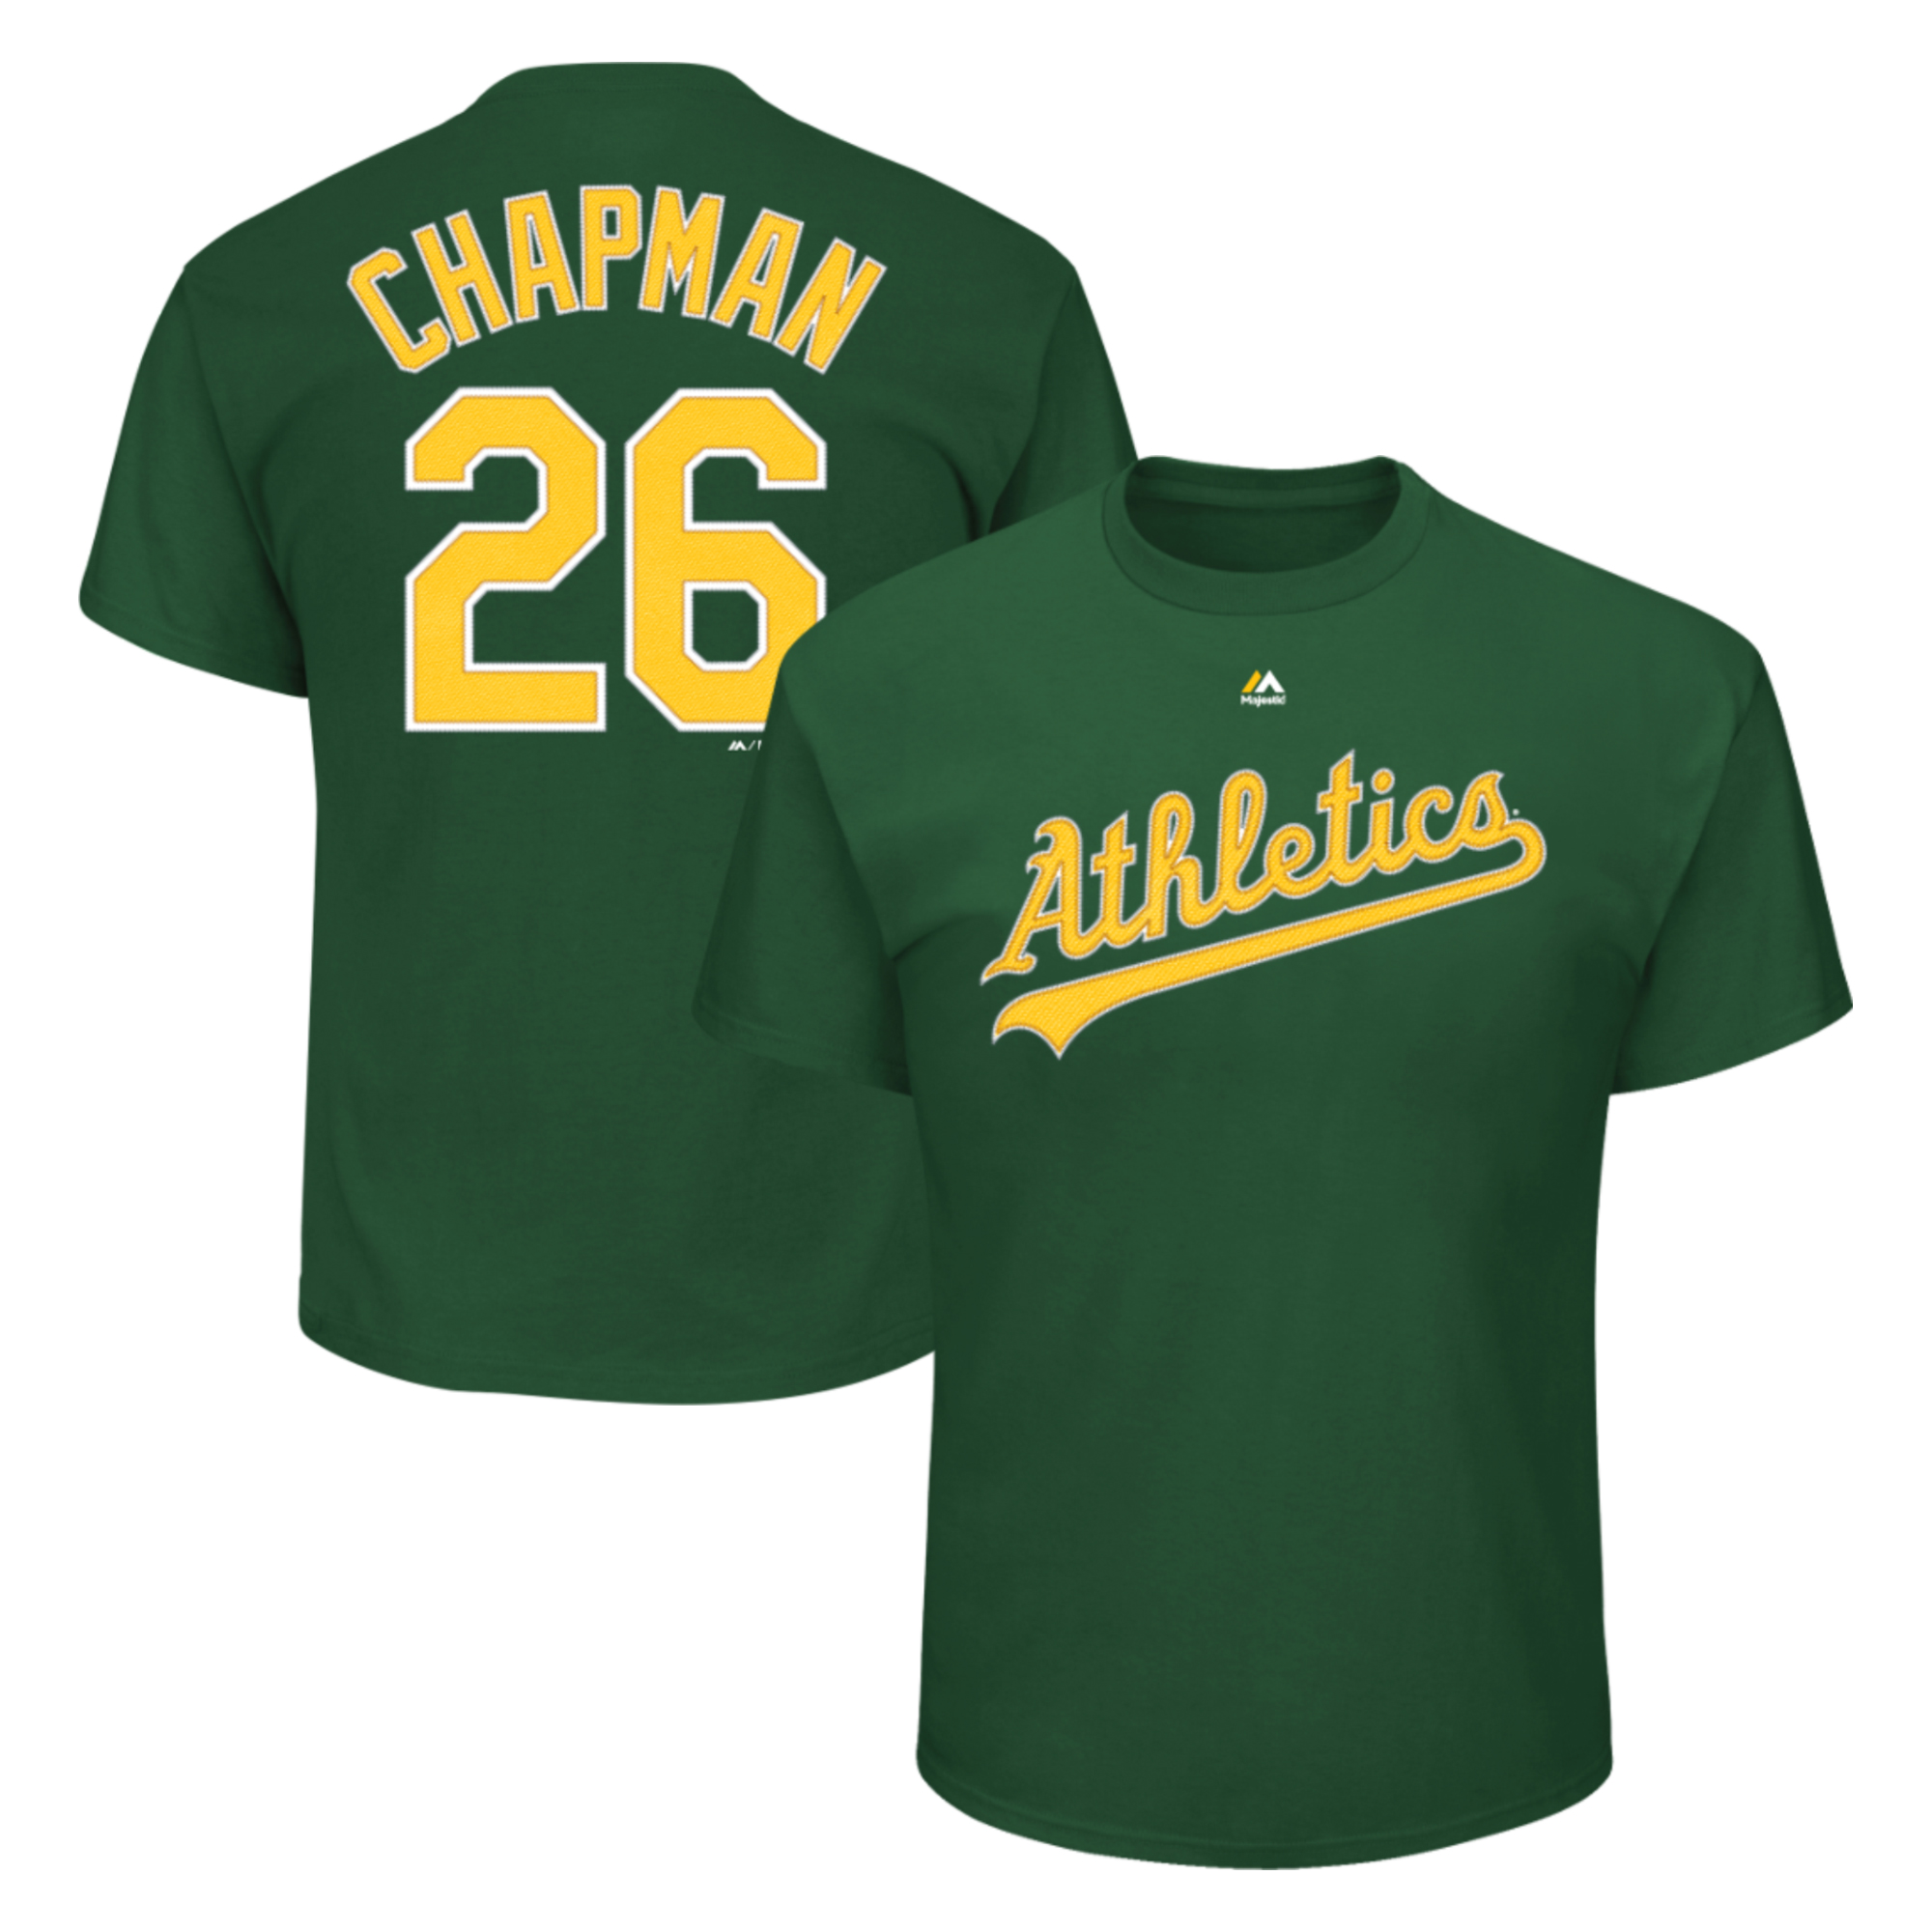 Matt Chapman Oakland Athletics Majestic Official Name and Number T-Shirt - Green